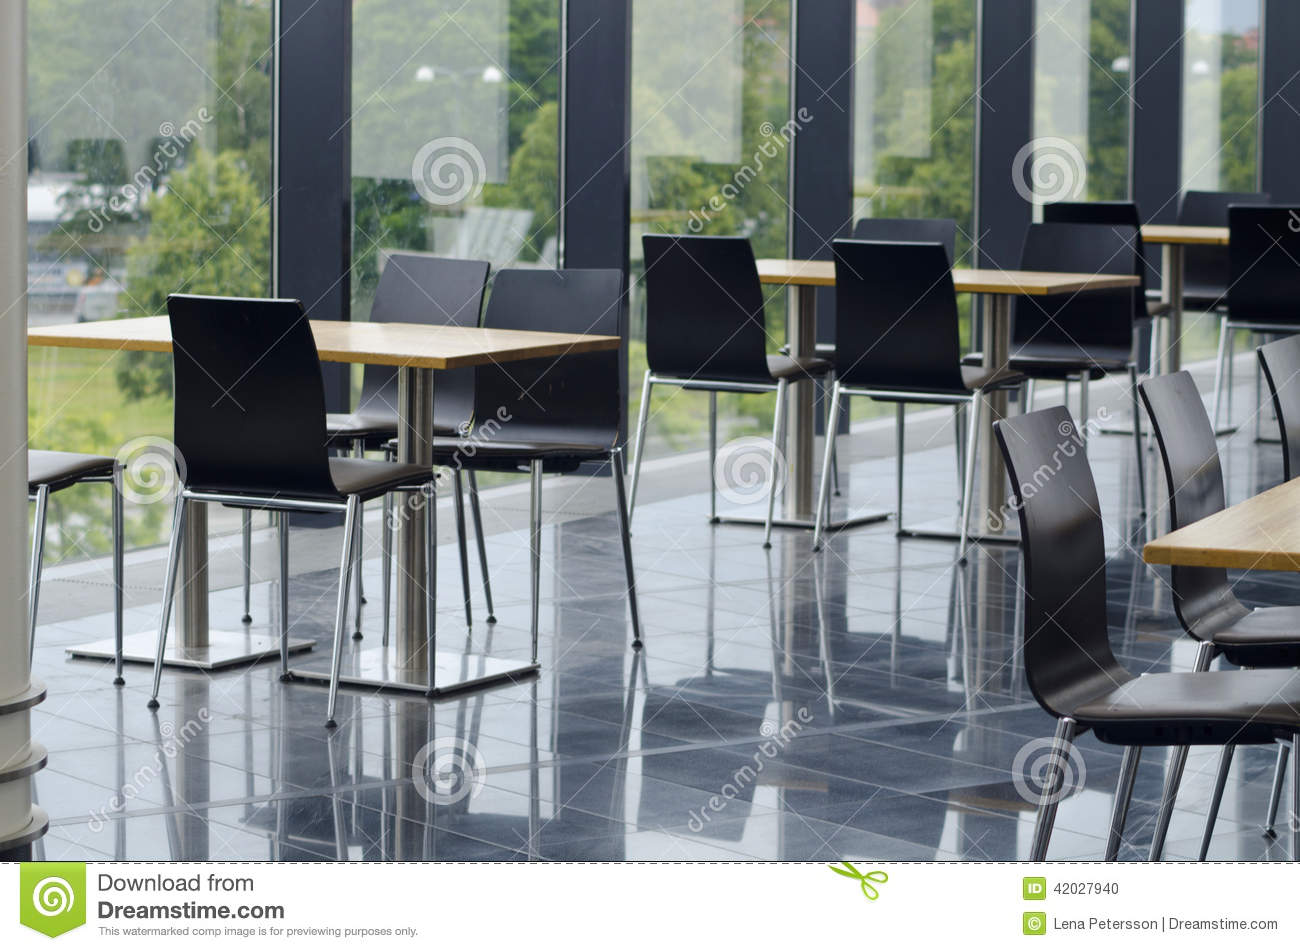 Modern office building cafeteria seating area stock photo image